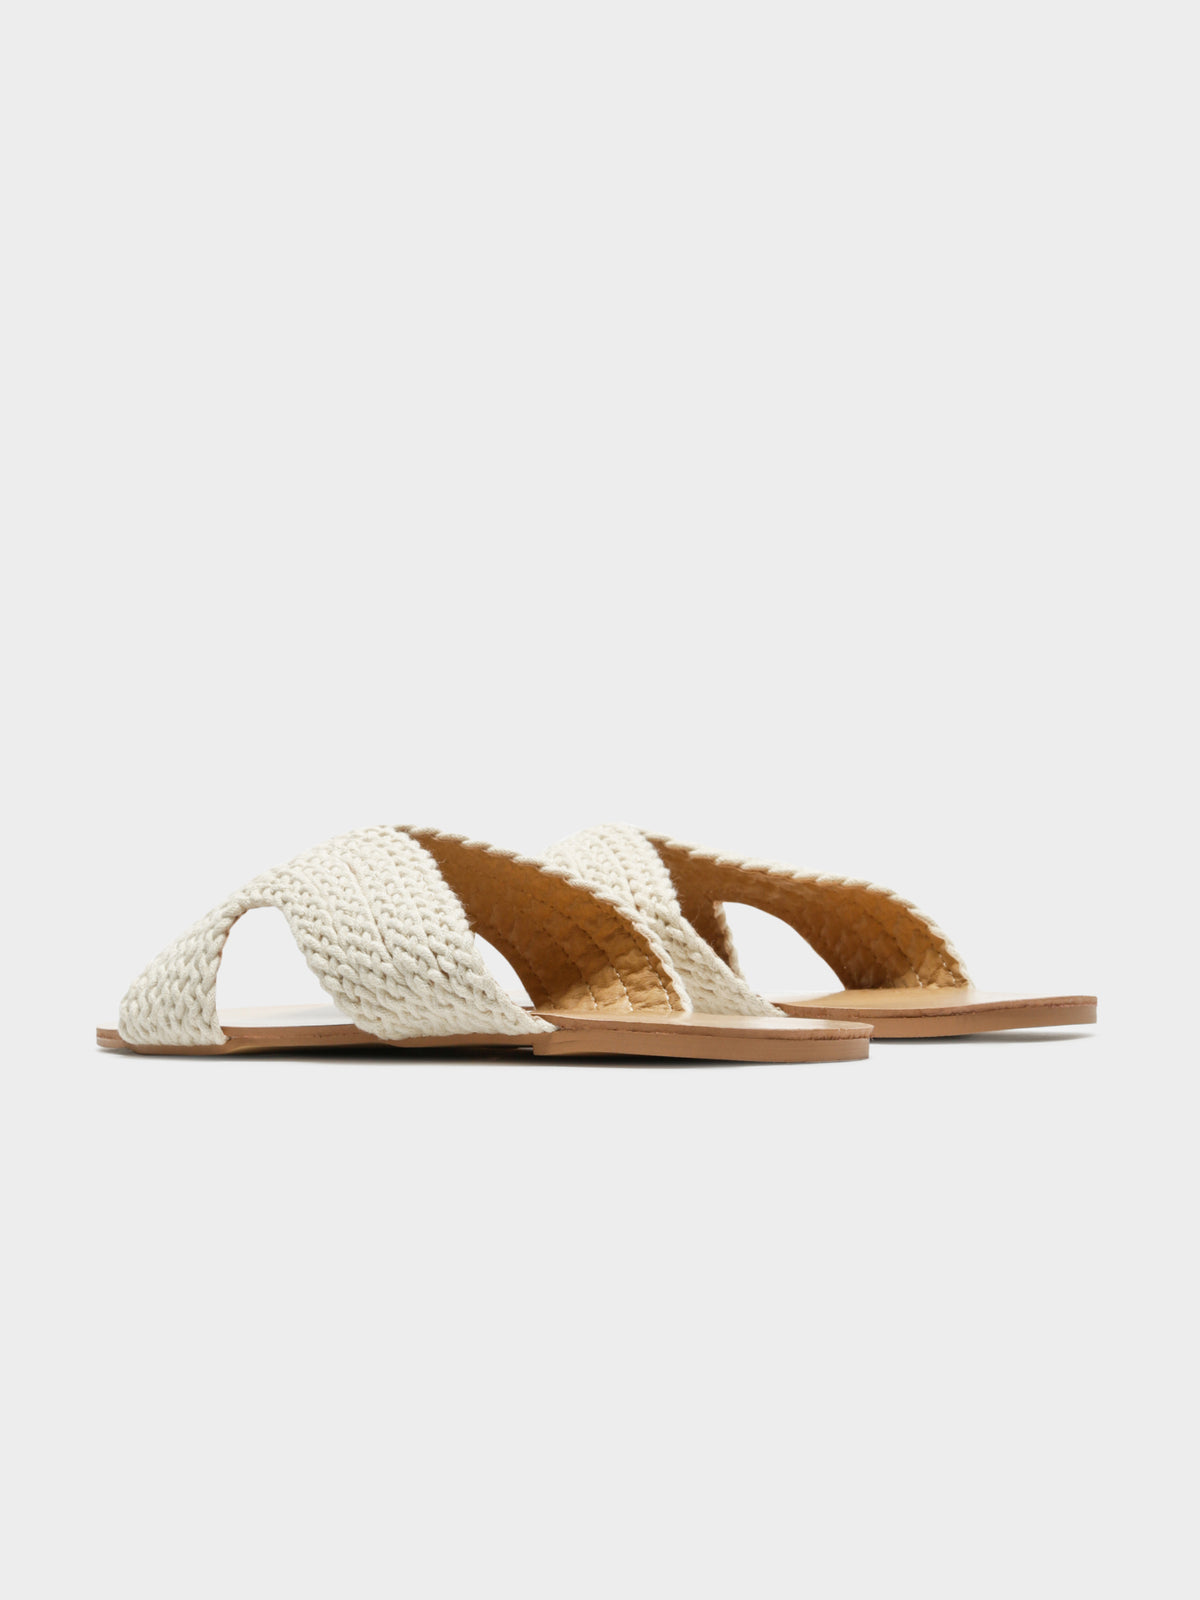 Astor Woven Slides in Natural